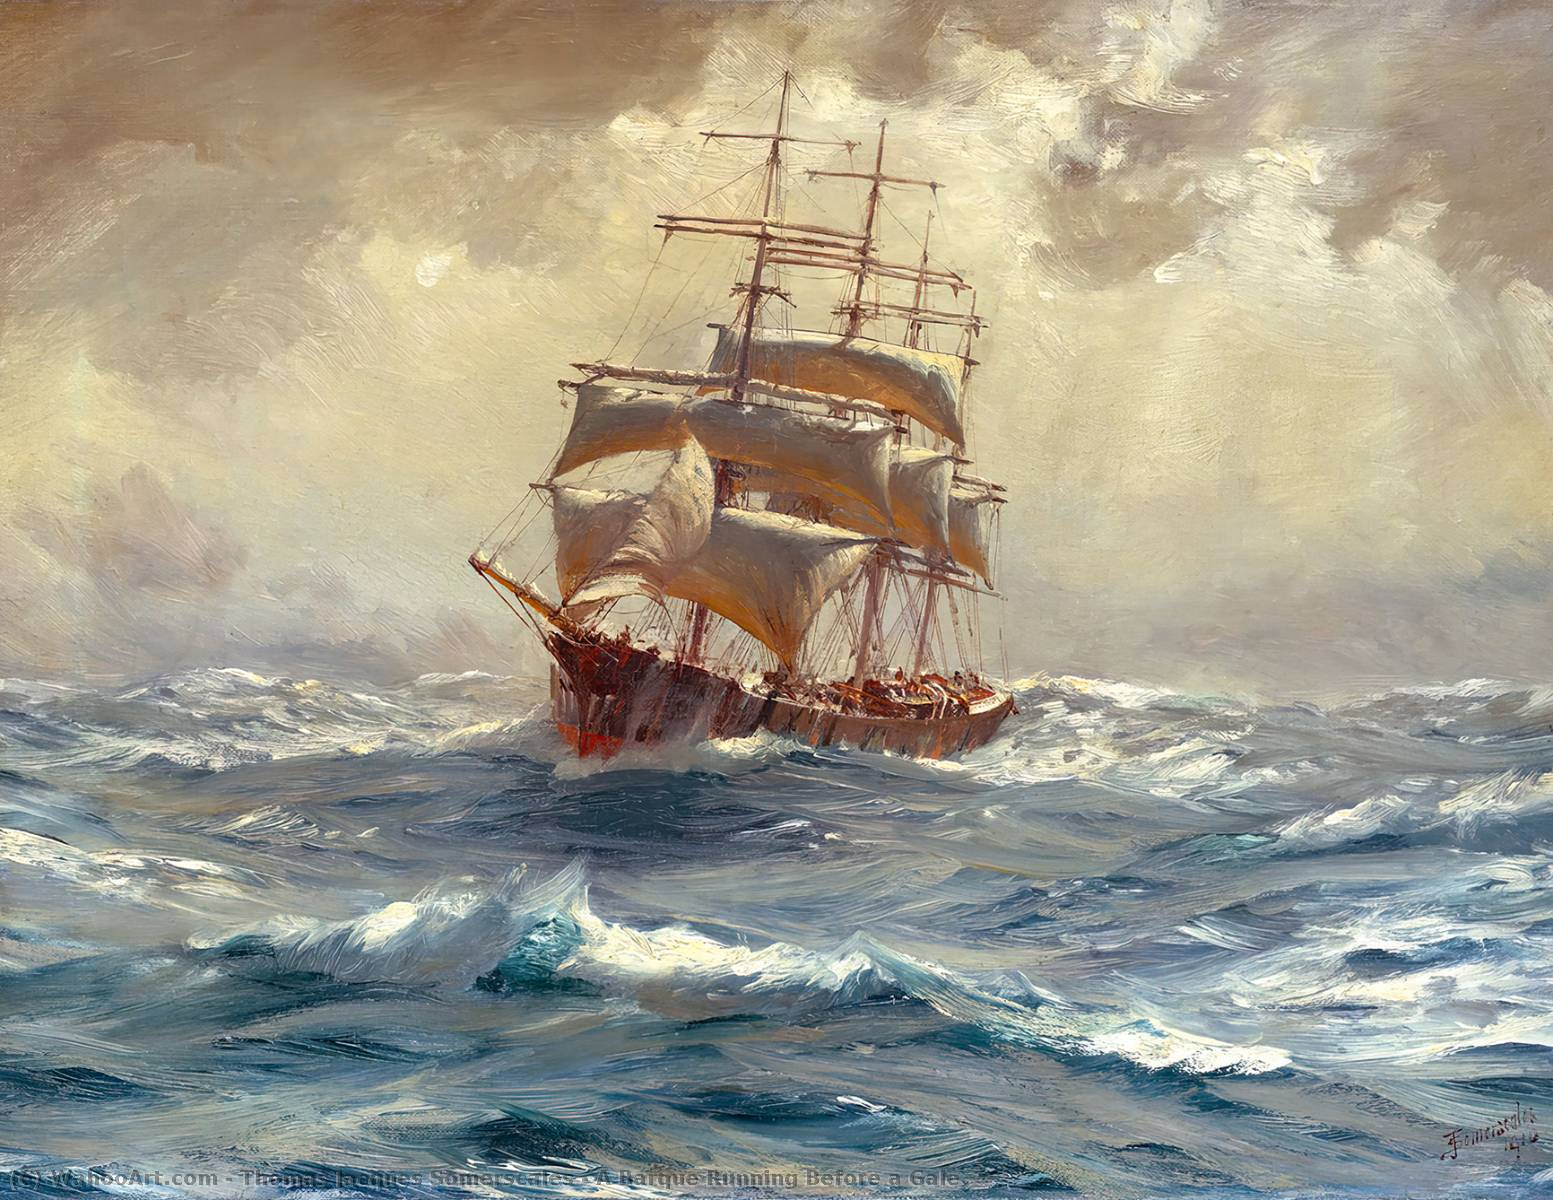 A Barque Running Before a Gale, 1910 by Thomas Jacques Somerscales (1842-1927) | WahooArt.com